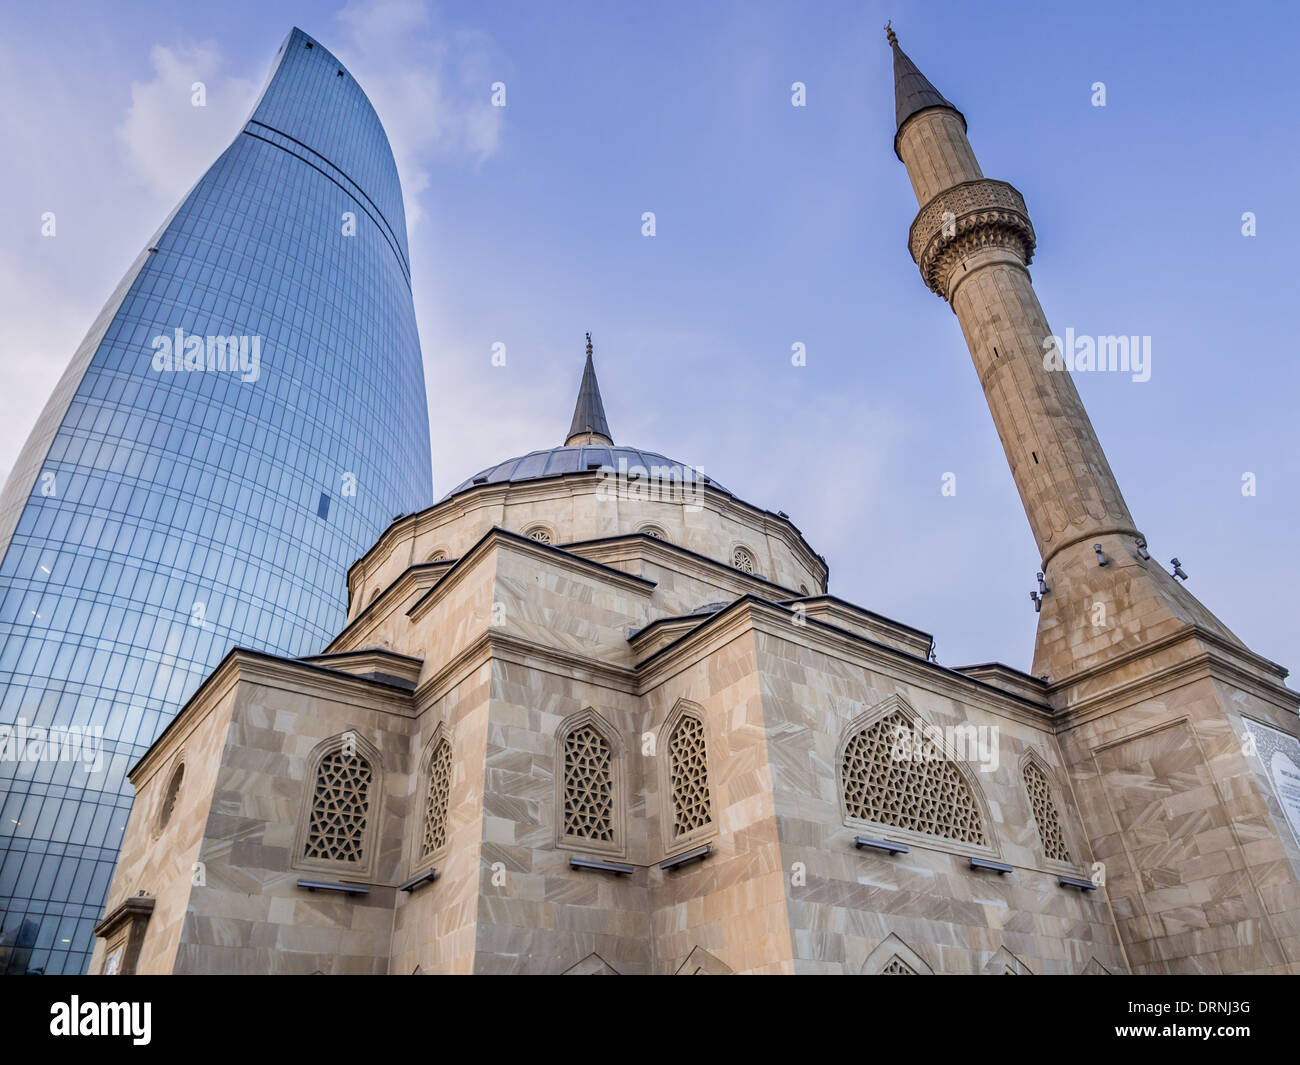 The Mosque of the Martyrs (Sehidler Mescidi Mosque, Turkish Mosque) with the Flame Towers in the background in Baku, Azerbaijan. - Stock Image